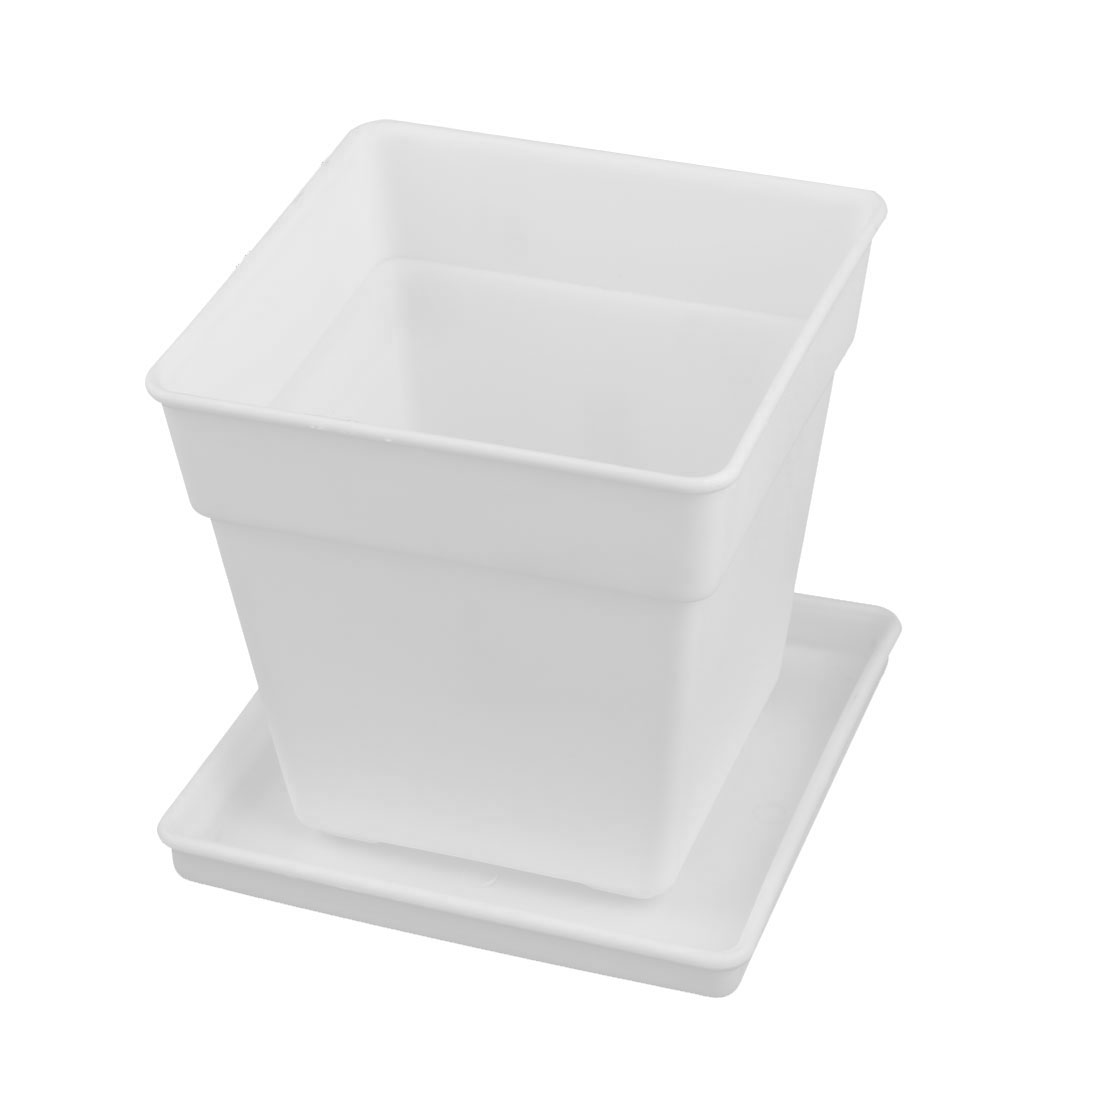 Balcony Decor Plastic Square Flower Cactus Plant Pot Tray Holder Container White